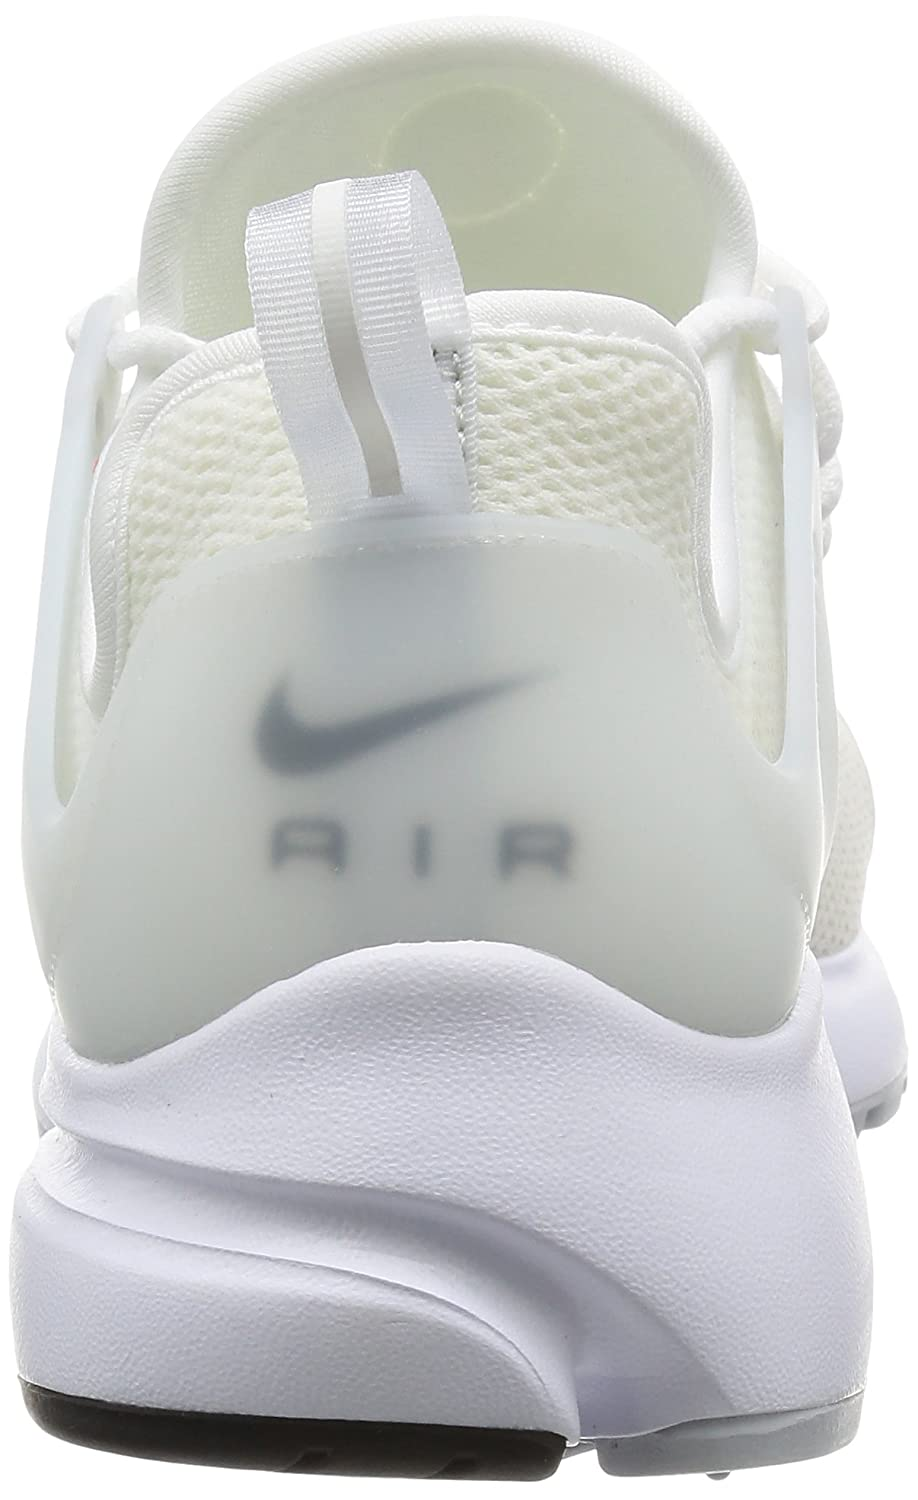 NIKE Women's Air Presto US|White/Pure Running Shoe B01HHWYRYS 8 B(M) US|White/Pure Presto Platinum 604423